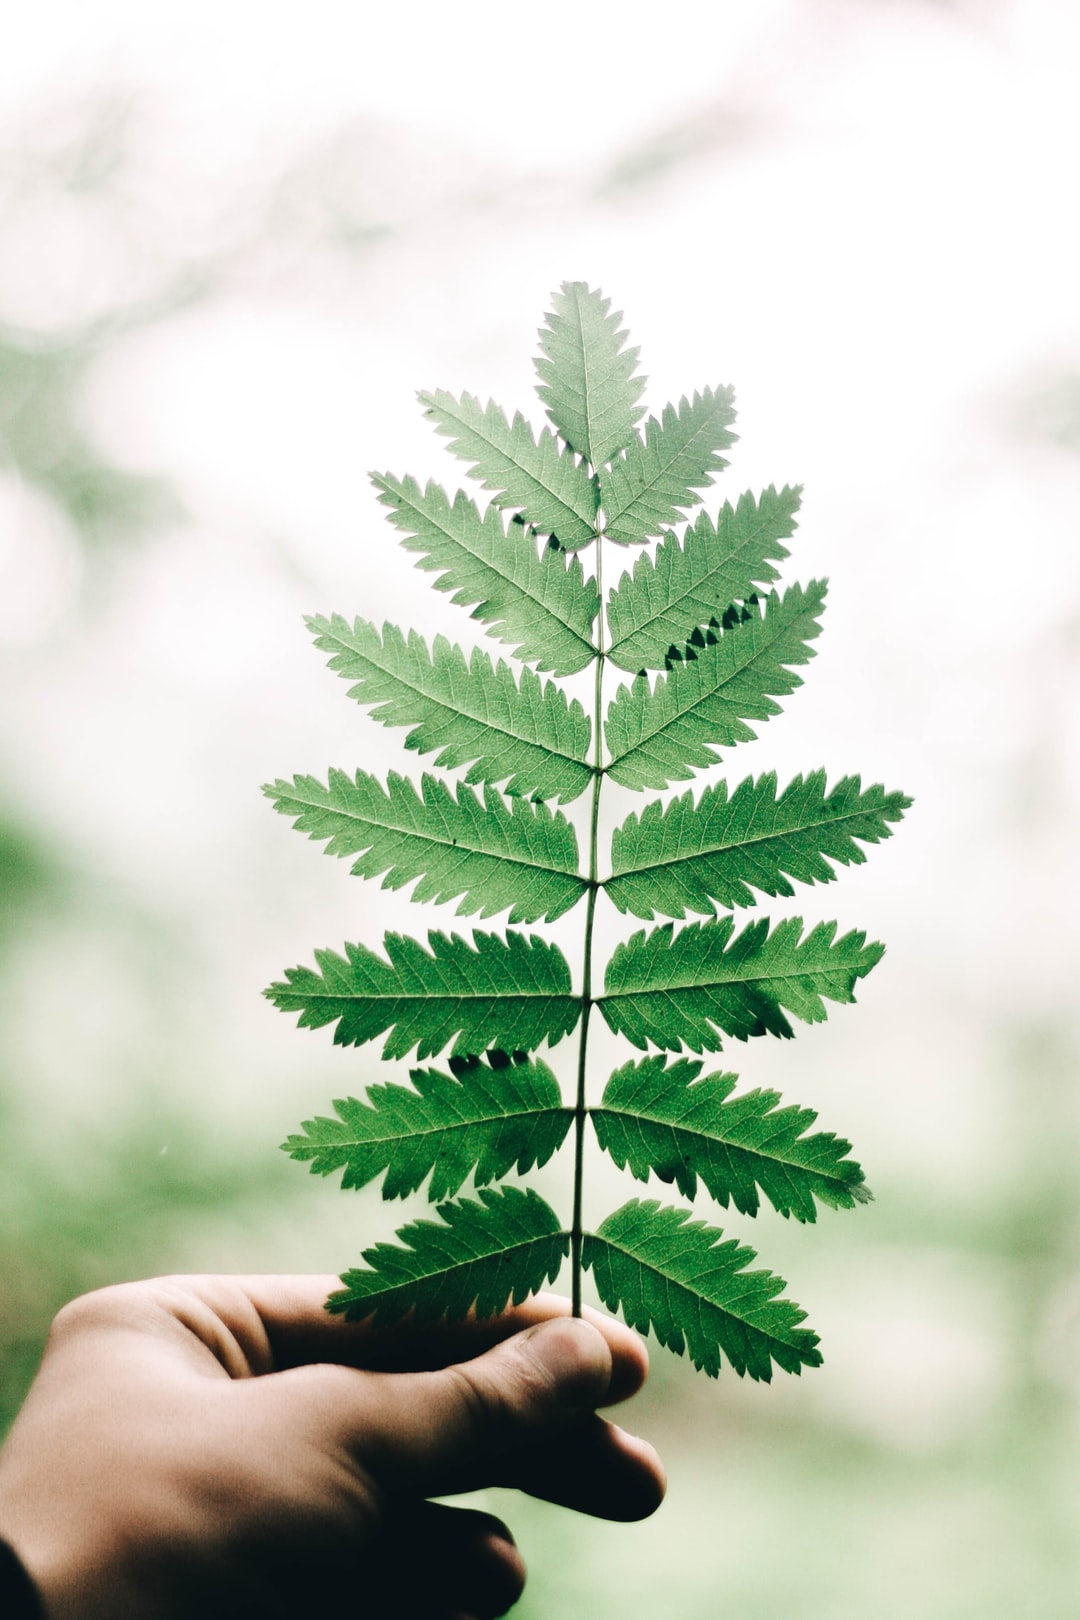 WHAT ARE THE FUNDING OPTIONS FOR MY ENVIRONMENTALLY FRIENDLY BUSINESS?